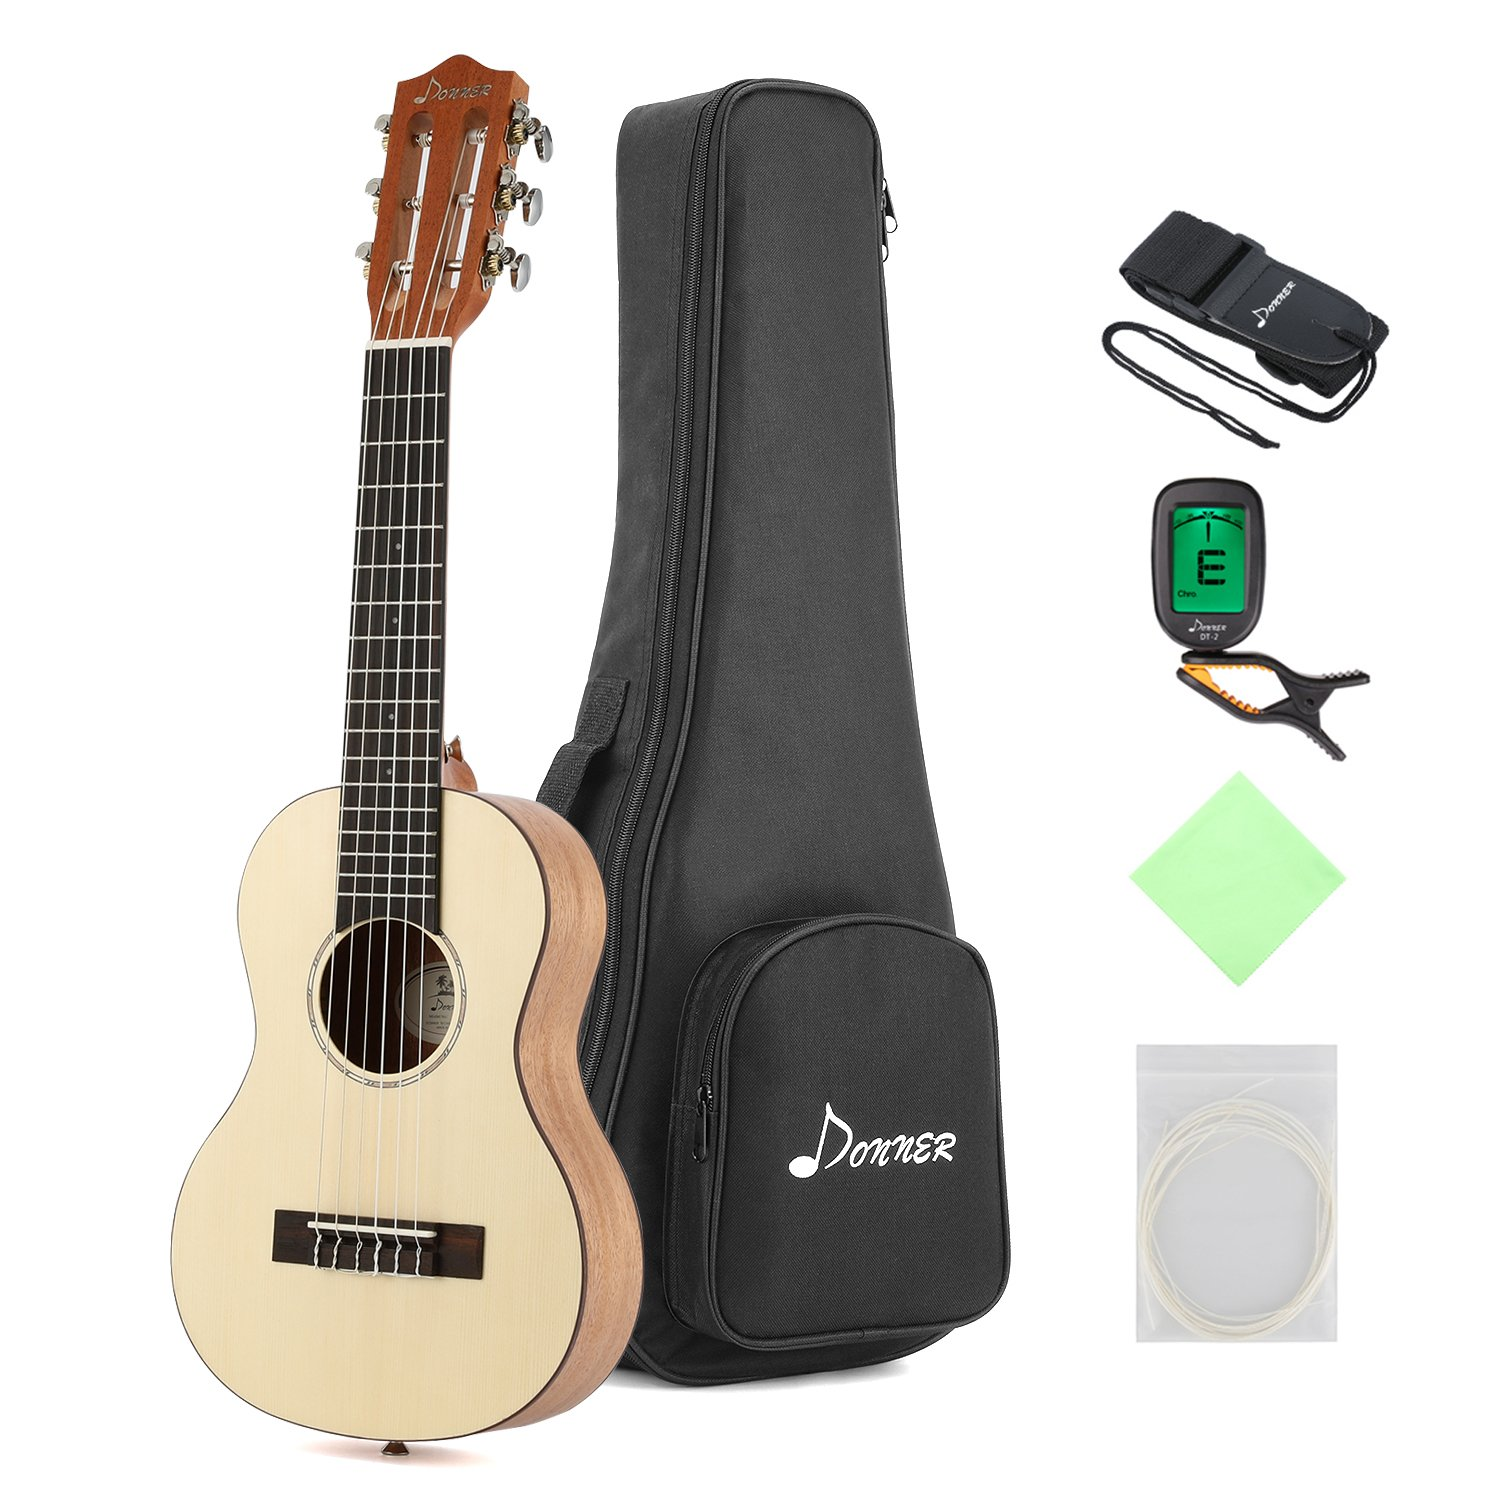 donner guitalele dgl 1 28 travel guitar ukulele